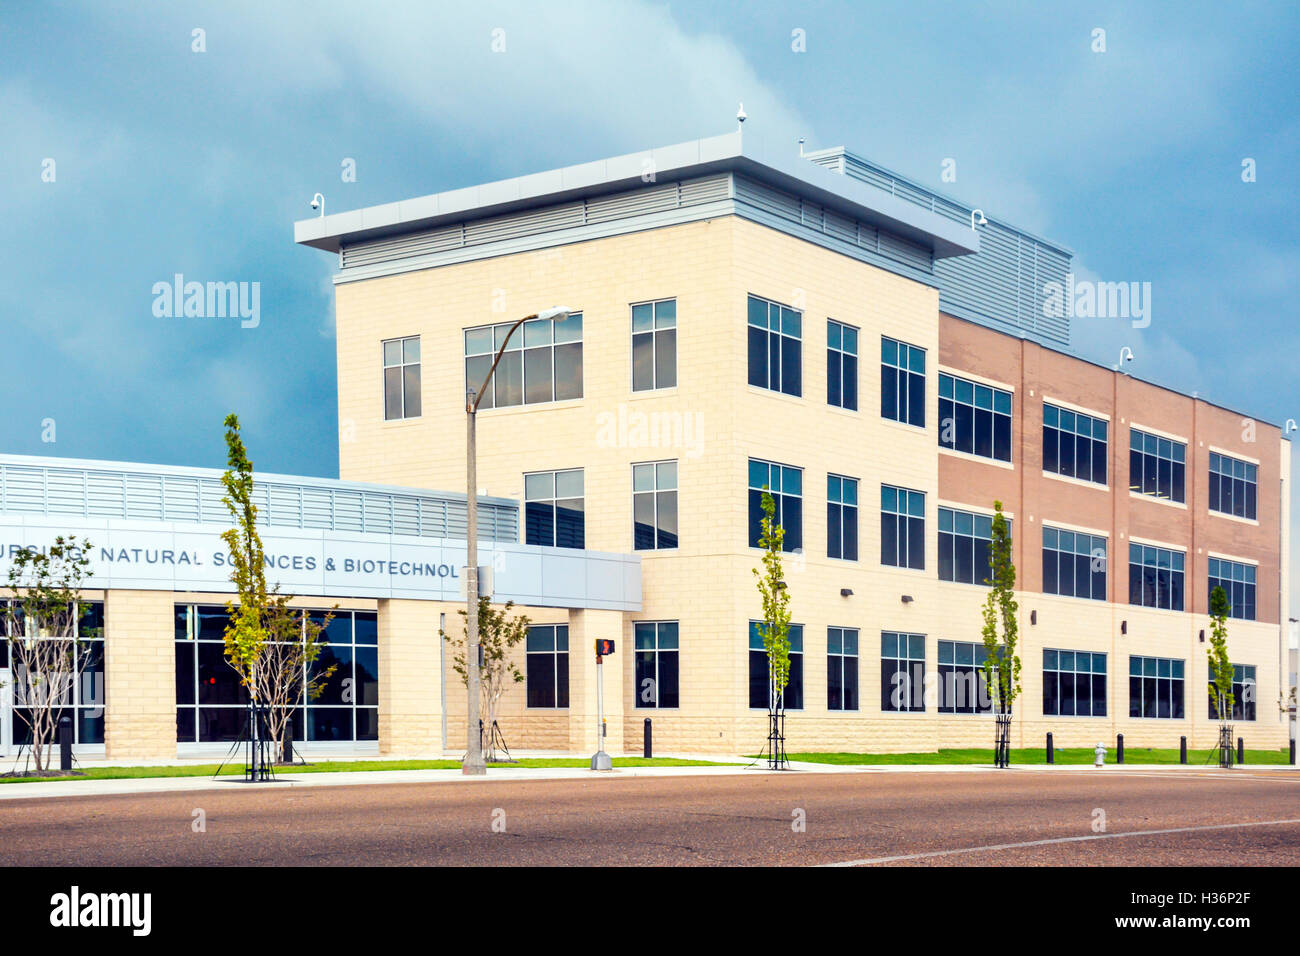 The Nursing, Natural Sciences and Biotechnology Building, Memphis, TN - Stock Image